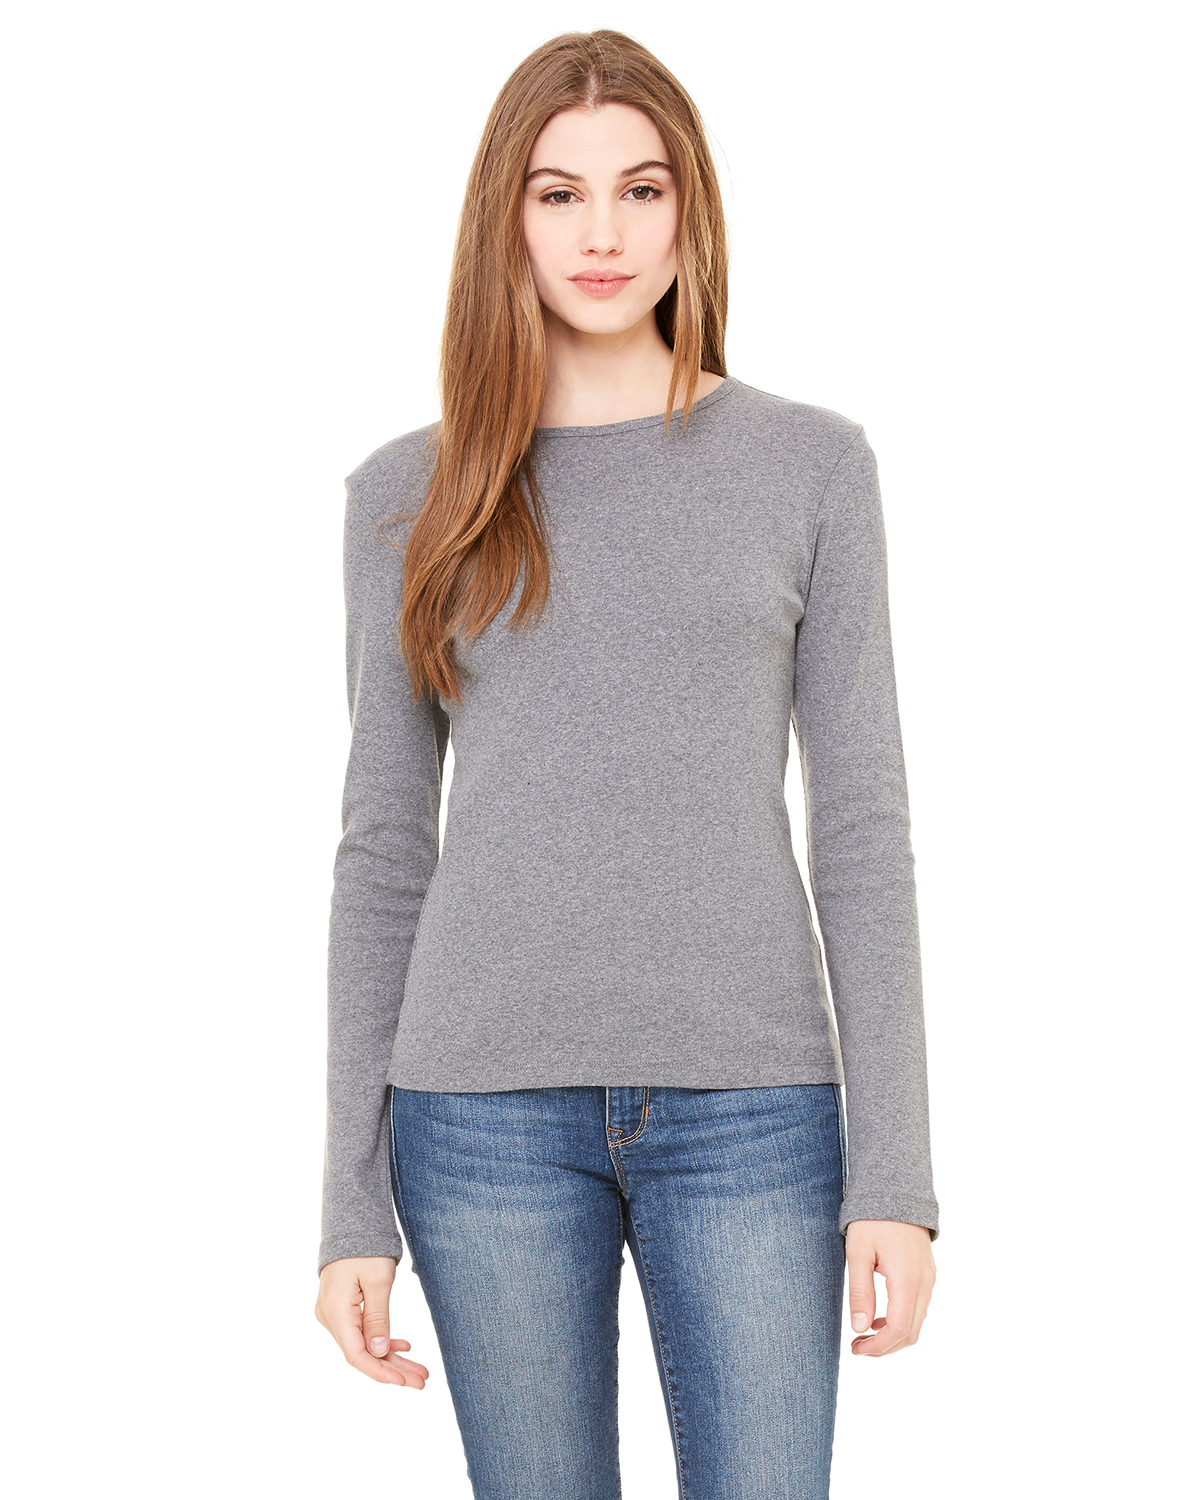 Bella BEL5001  Women's Baby Rib Long Sleeve T-Shirt